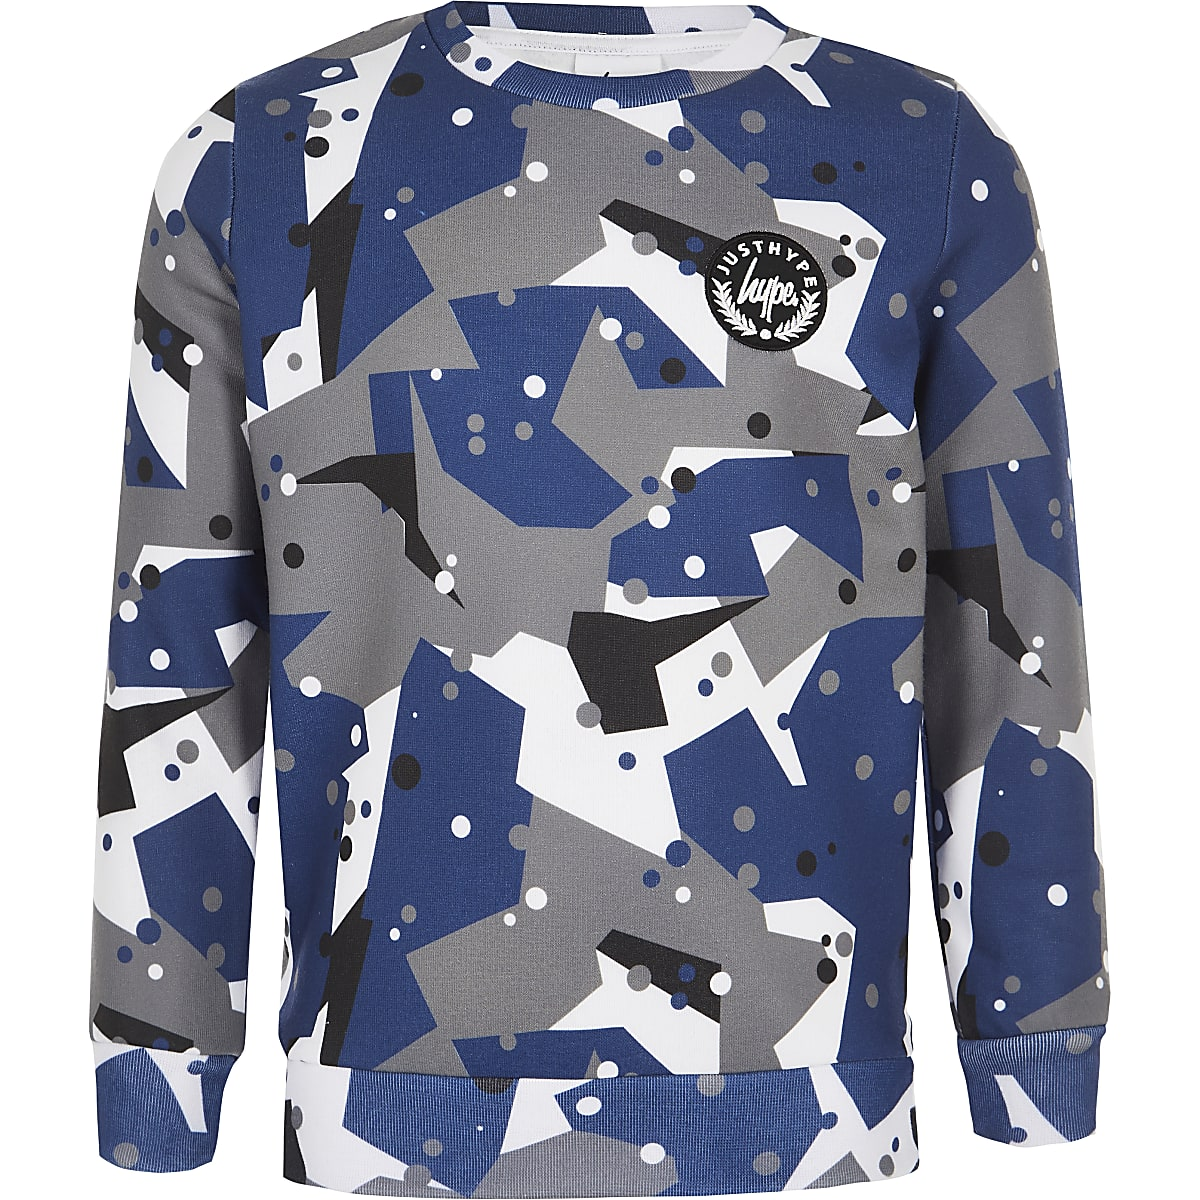 Boys Hype grey camo sweatshirt